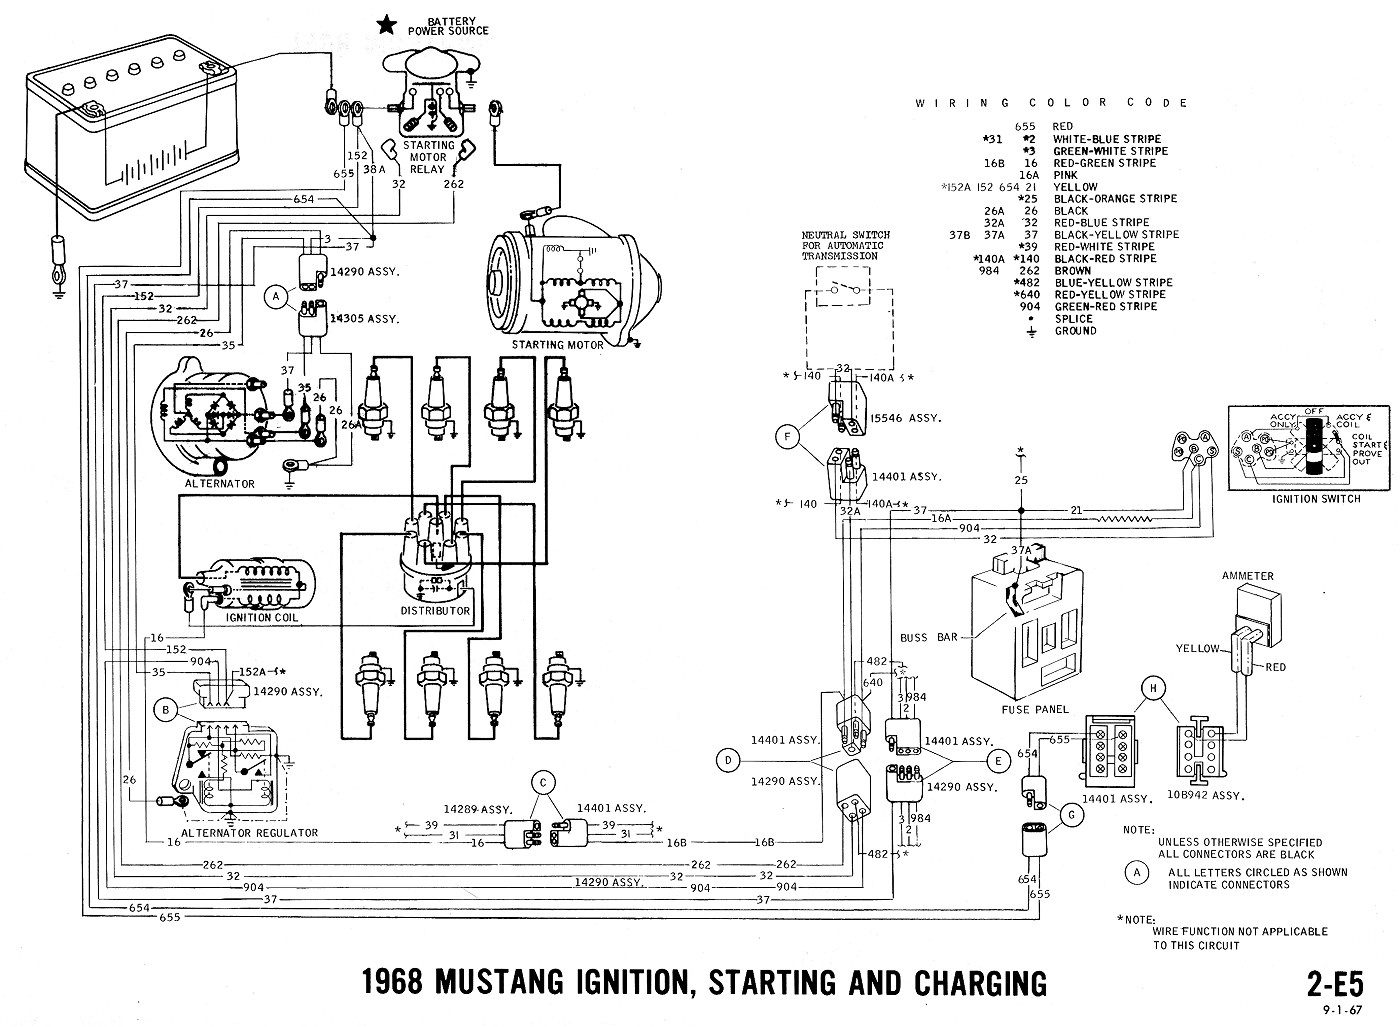 E5 wiring diagram 1968 camaro rally pack readingrat net 1967 camaro alternator wiring diagram at nearapp.co